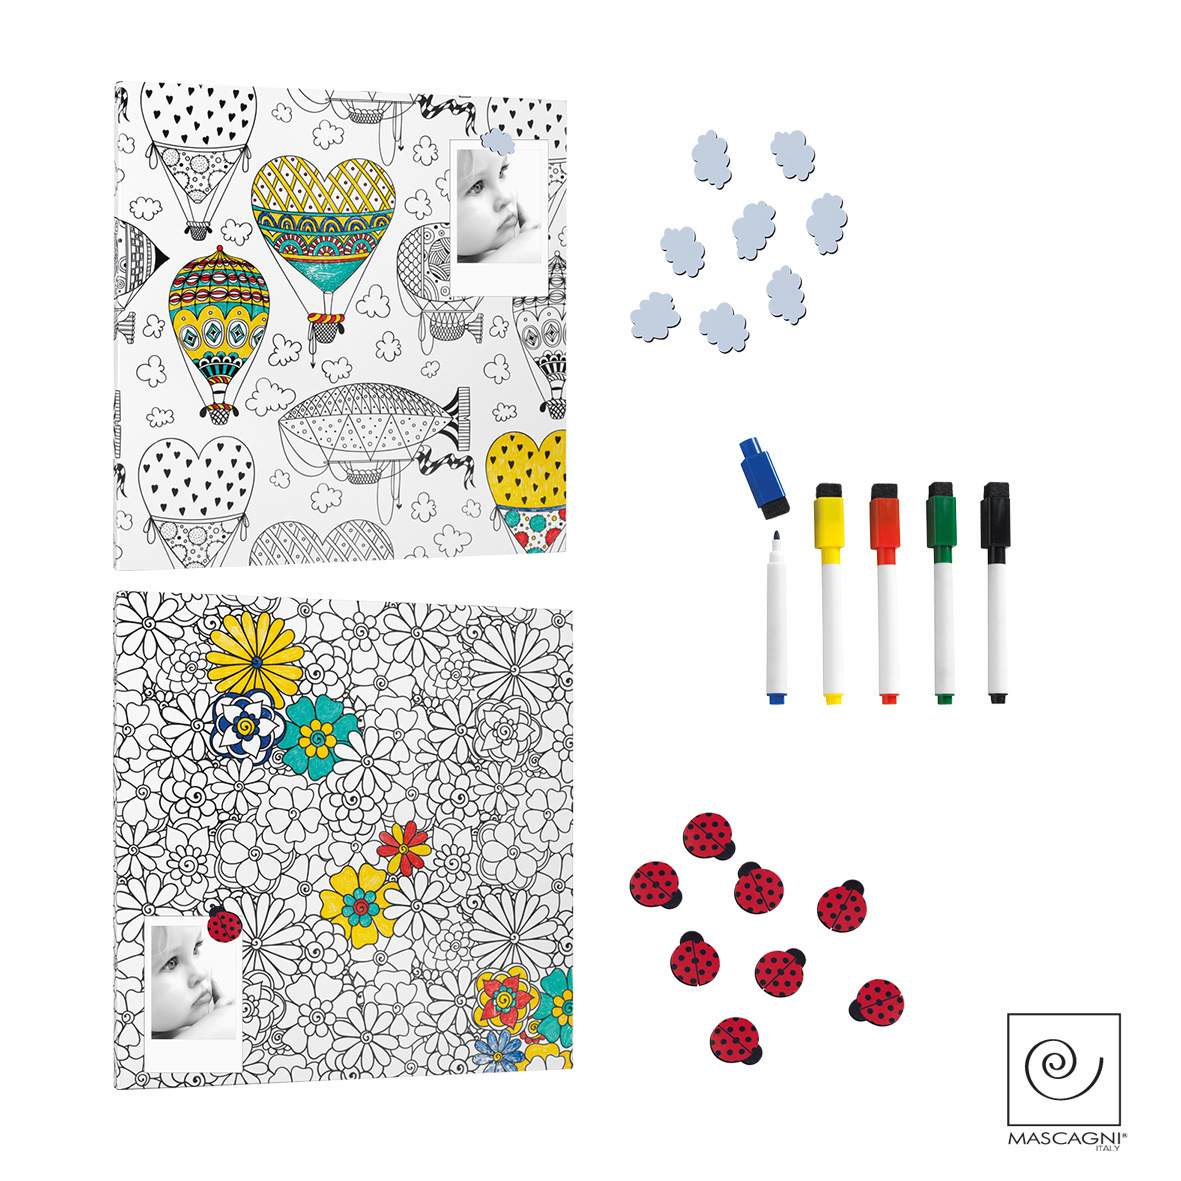 Art Mascagni A776 COLORABLE PANEL 45X45